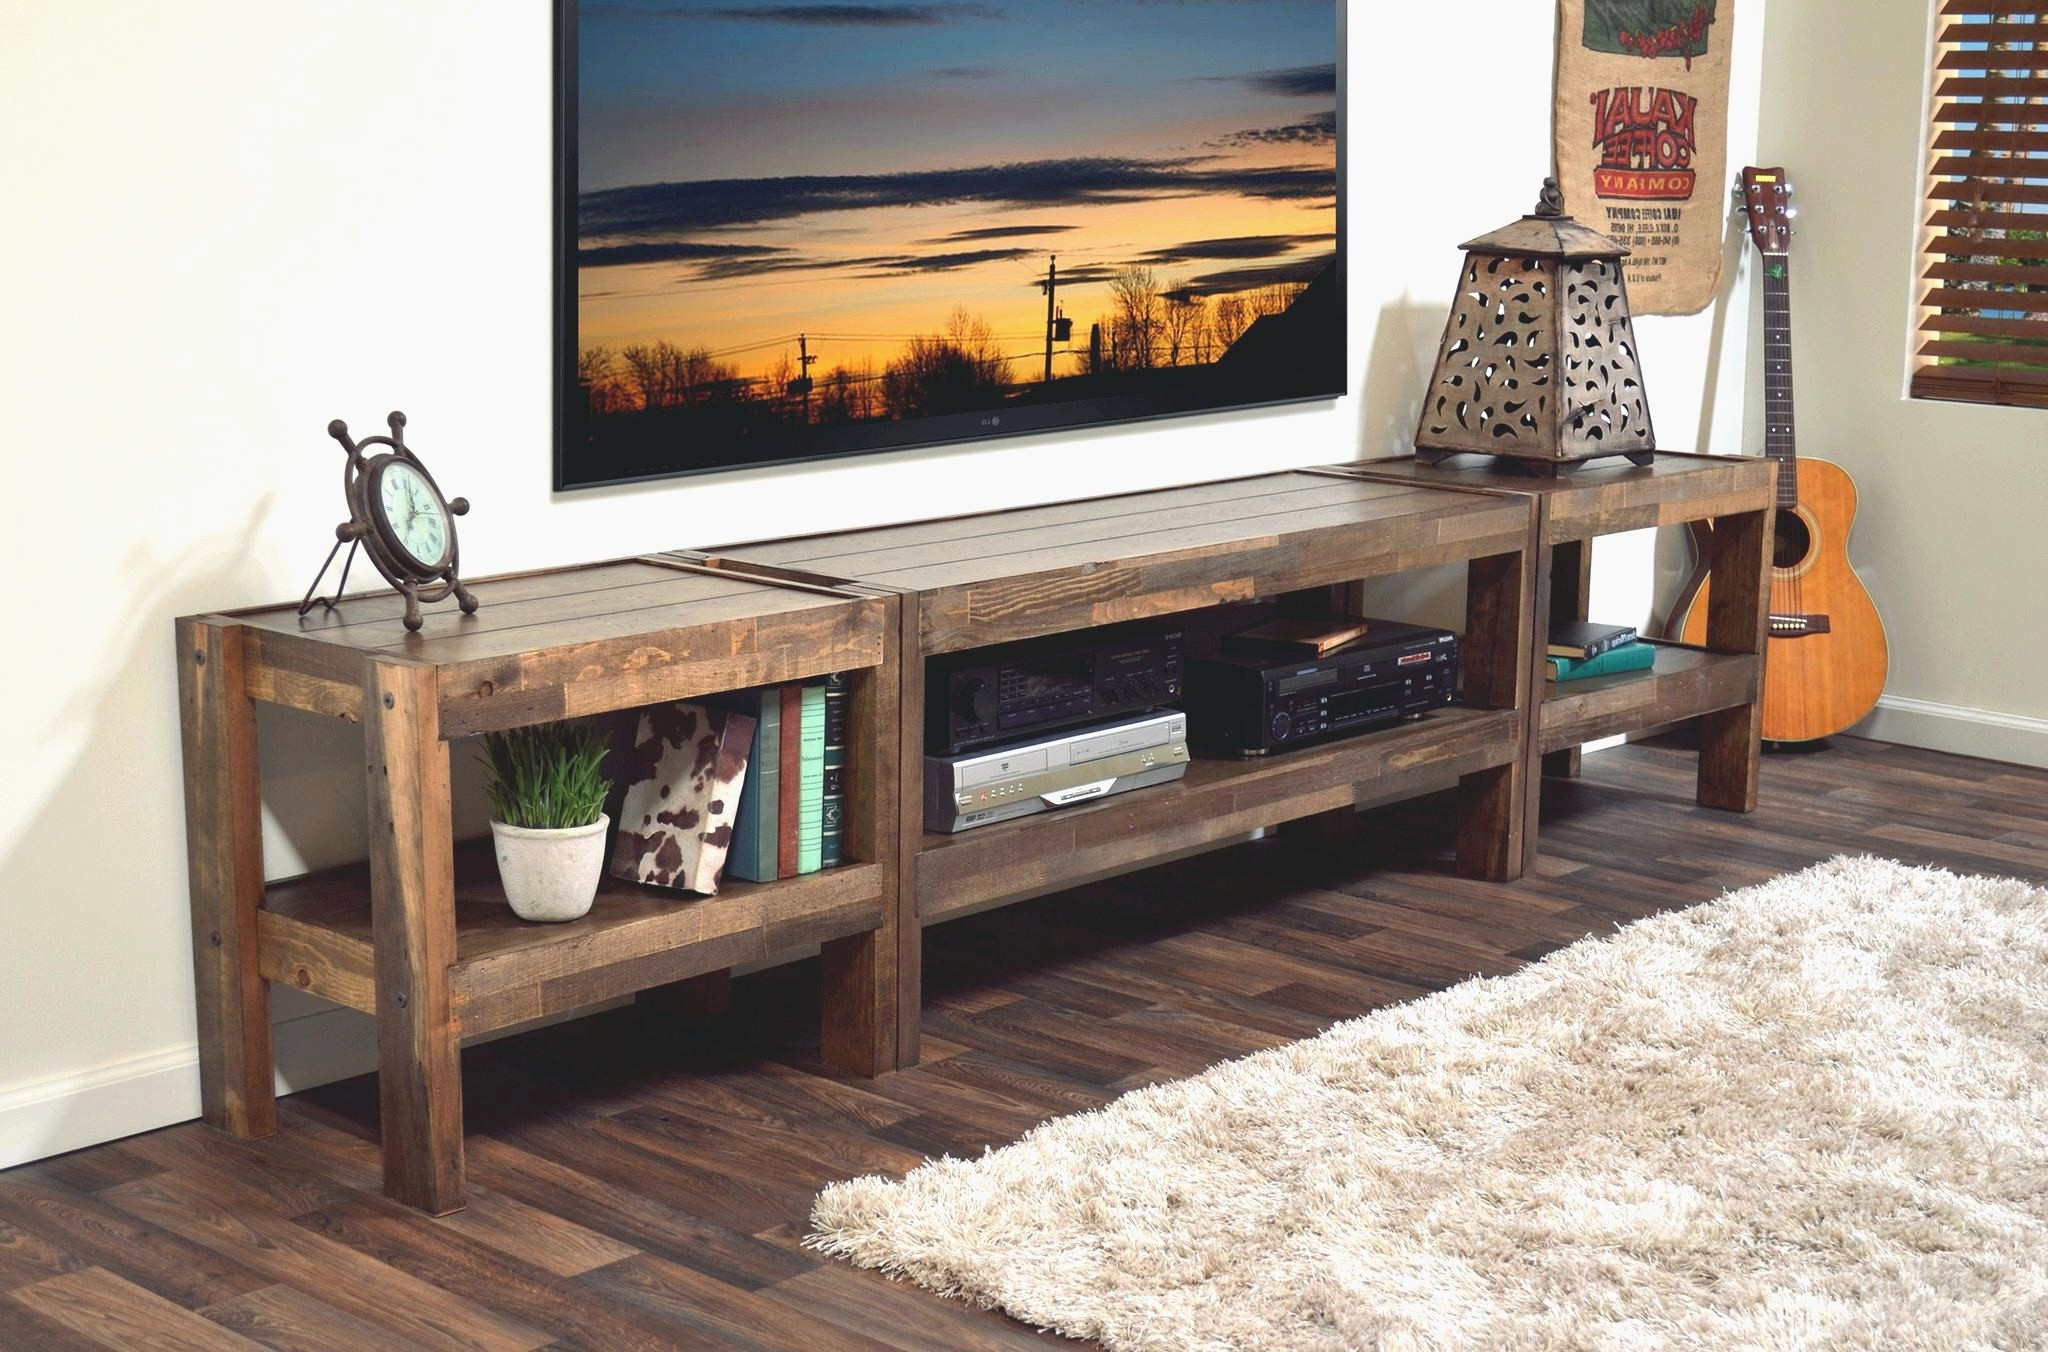 Elegant Unusual Tv Stands – Furnitureinredsea Within Well Known Unusual Tv Stands (View 17 of 20)